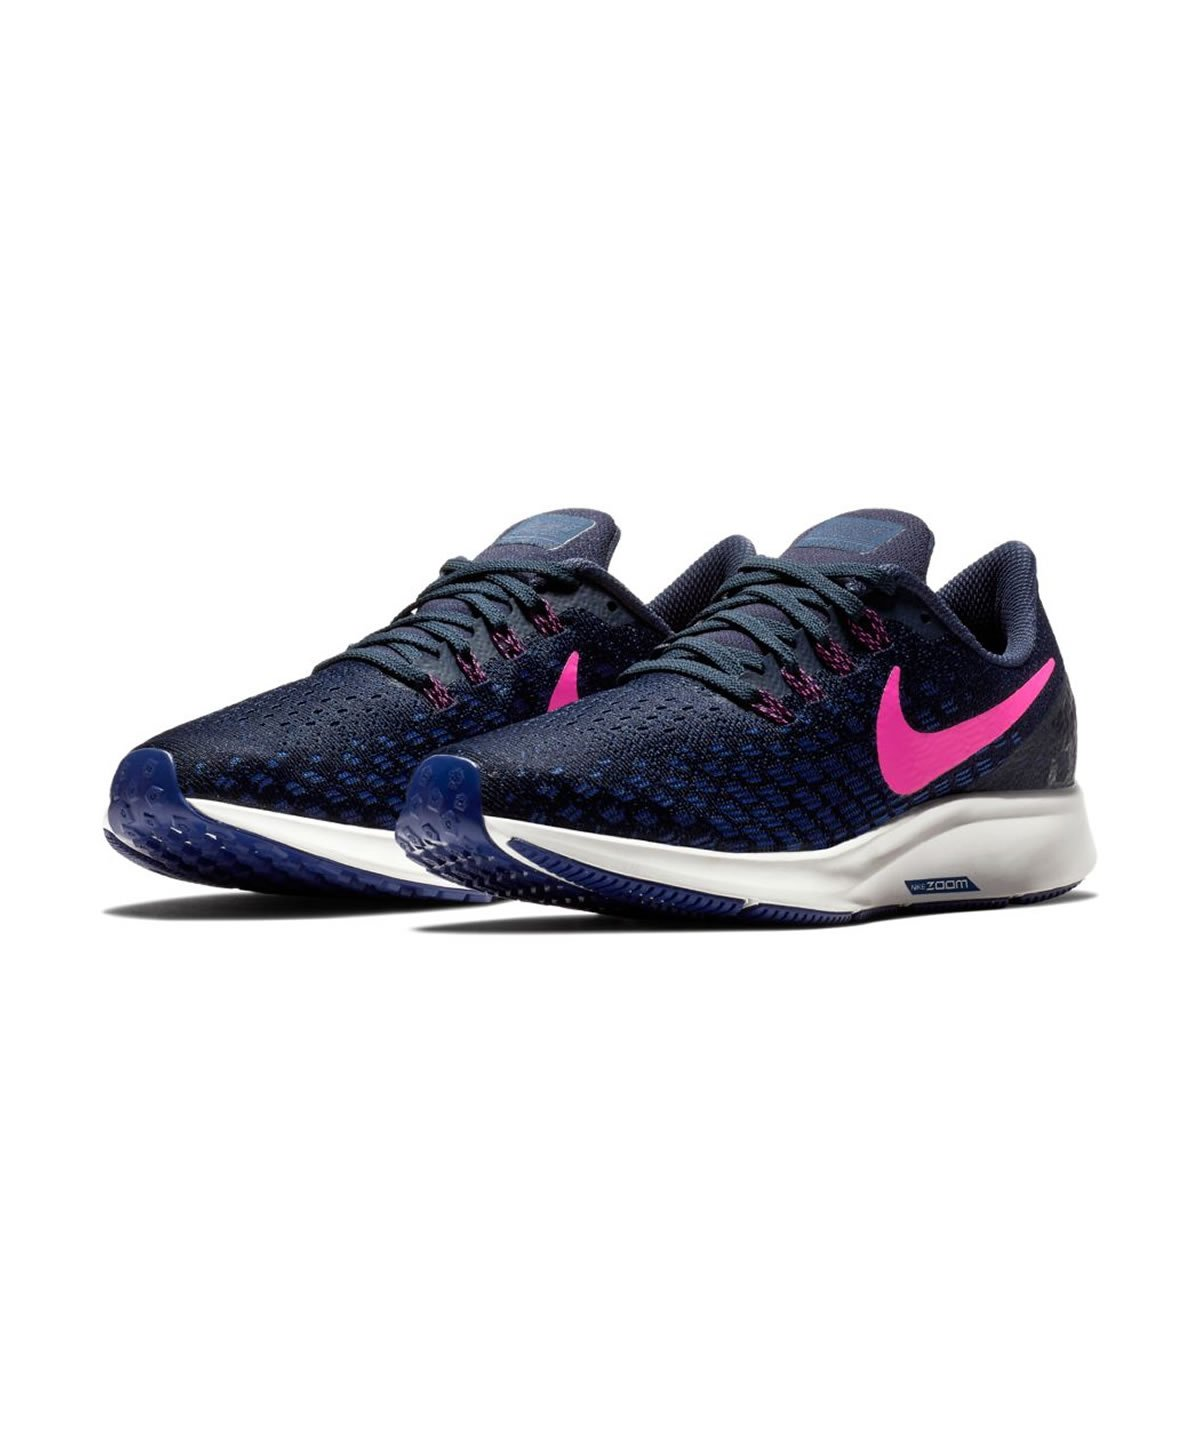 Nike Womens Air Zoom Pegasus 35 Running Shoes B078JB5T79 8 M US|Obsidian/Pink Blast/Deep Royal Blue